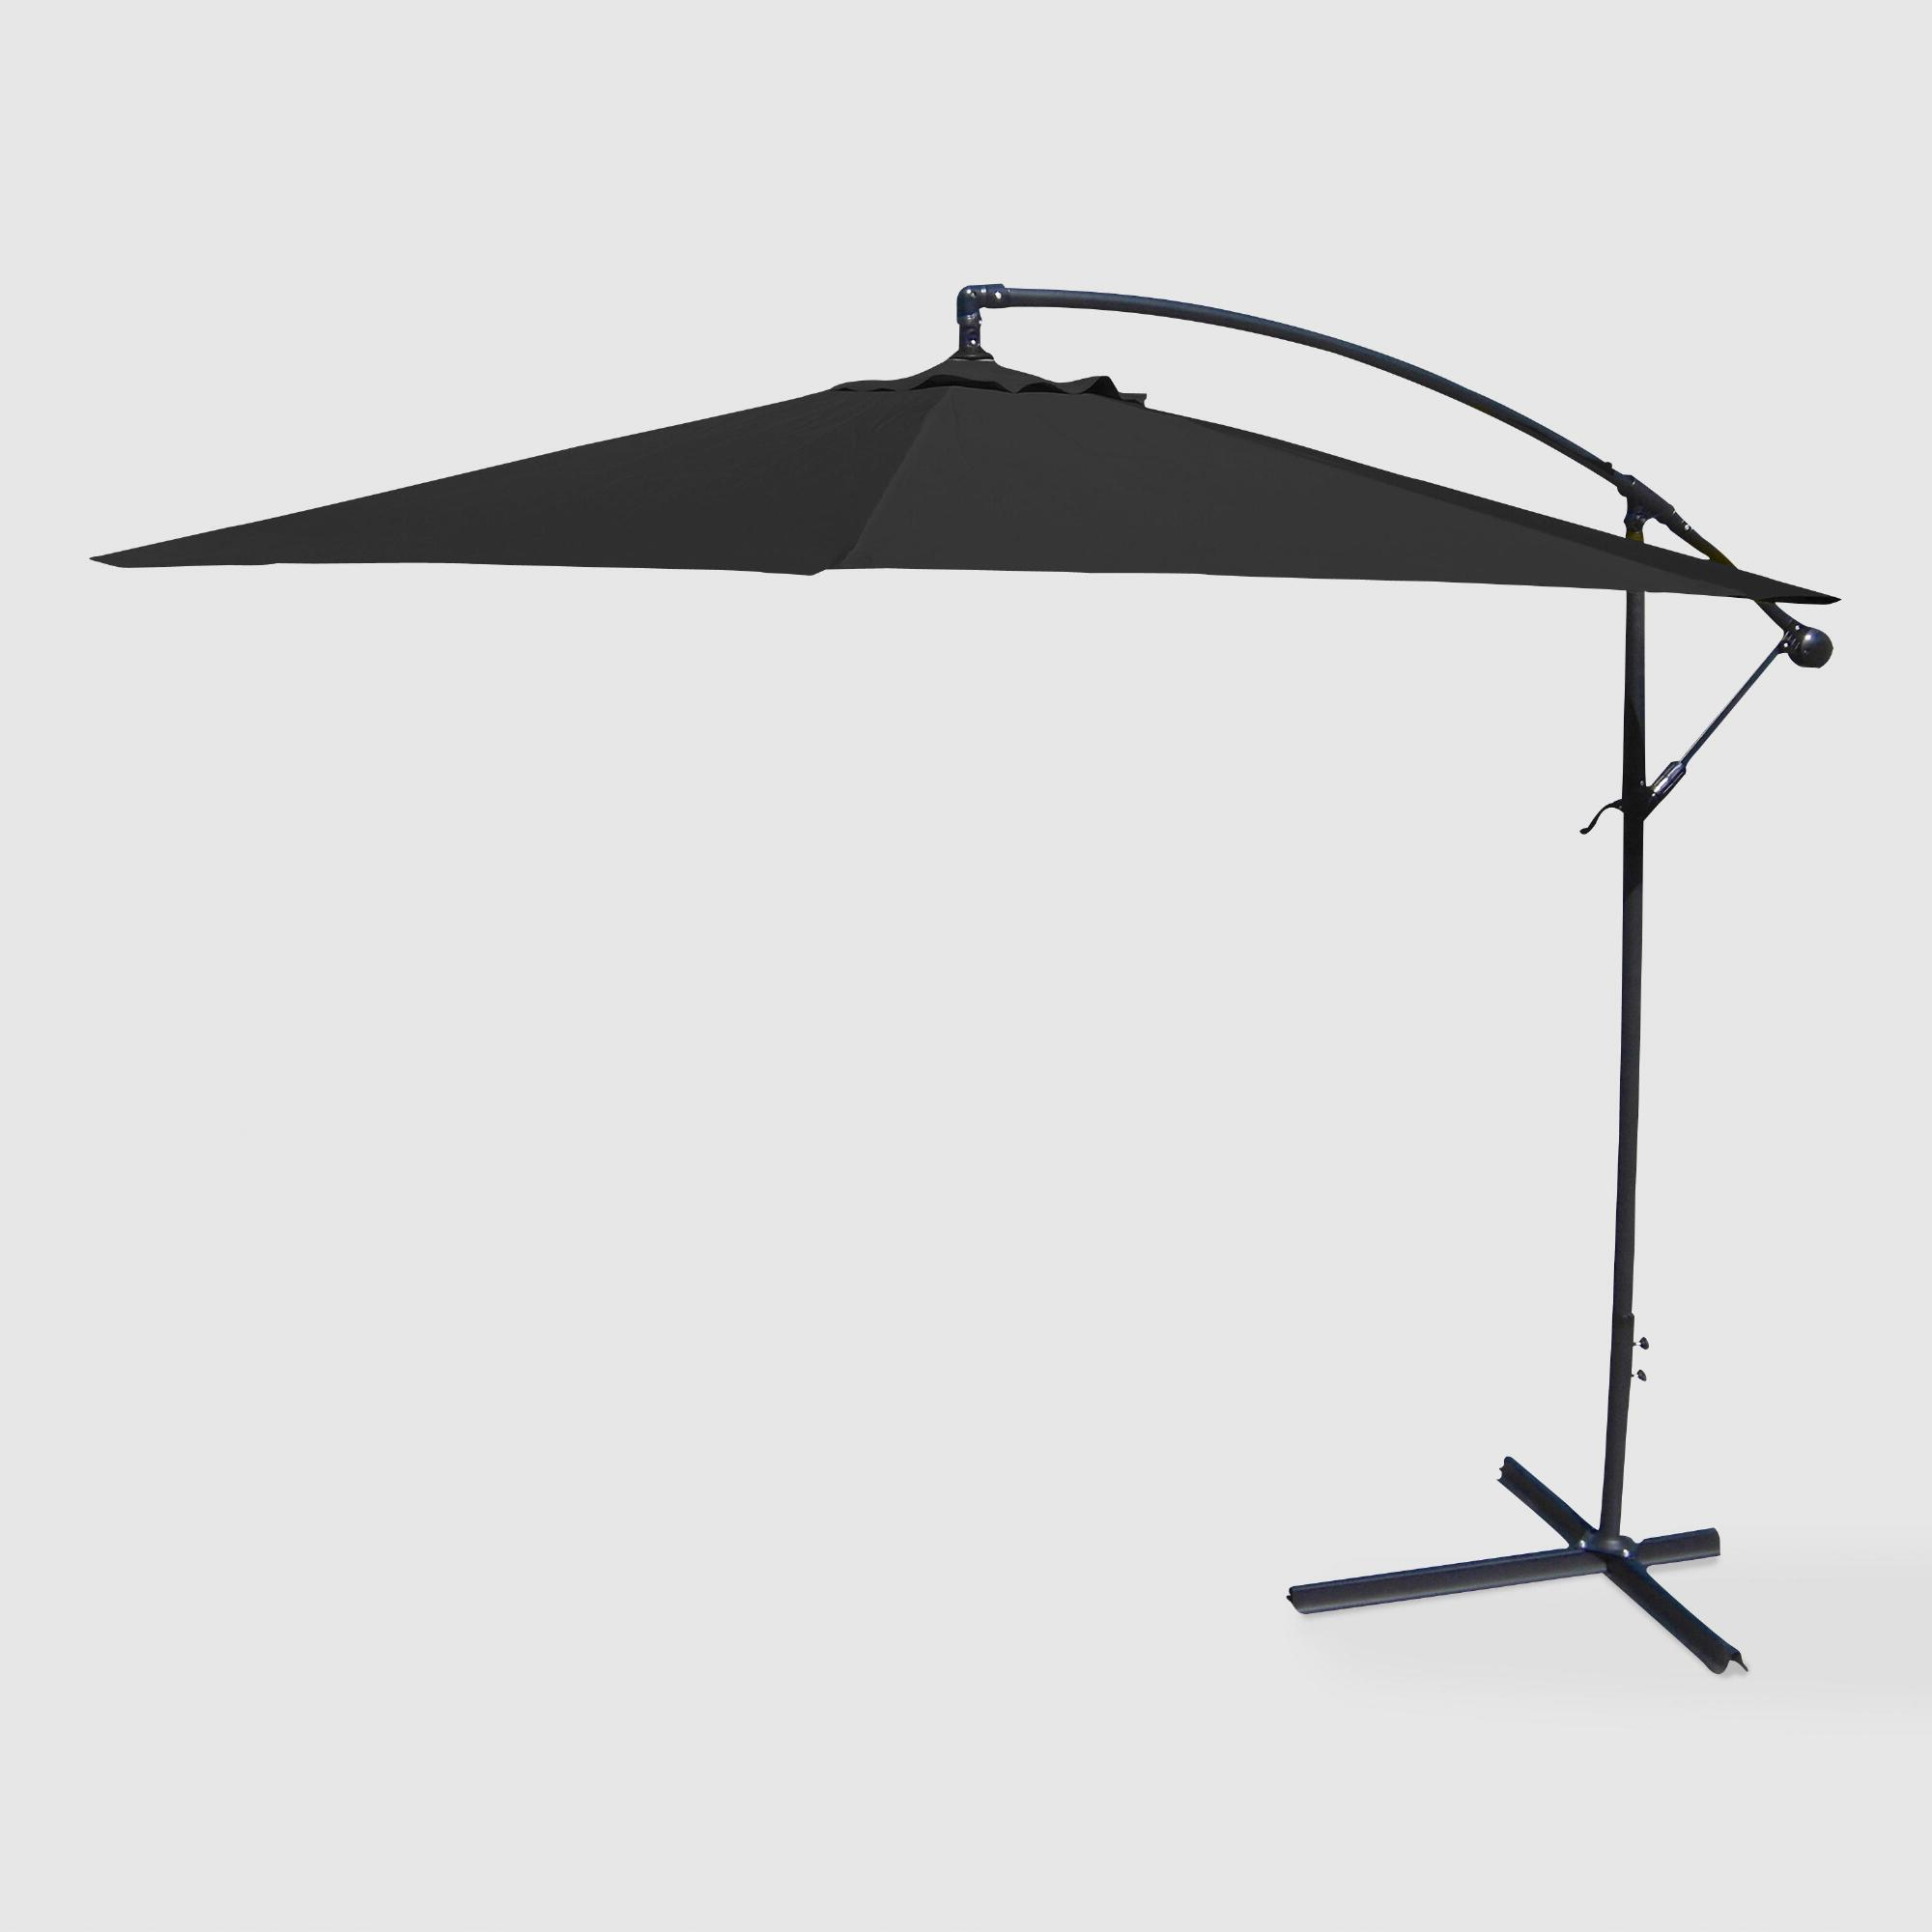 Black Cantilever Outdoor Patio Umbrella – Fabricworld Market In Regarding Fashionable Gemmenne Square Cantilever Umbrellas (View 14 of 20)